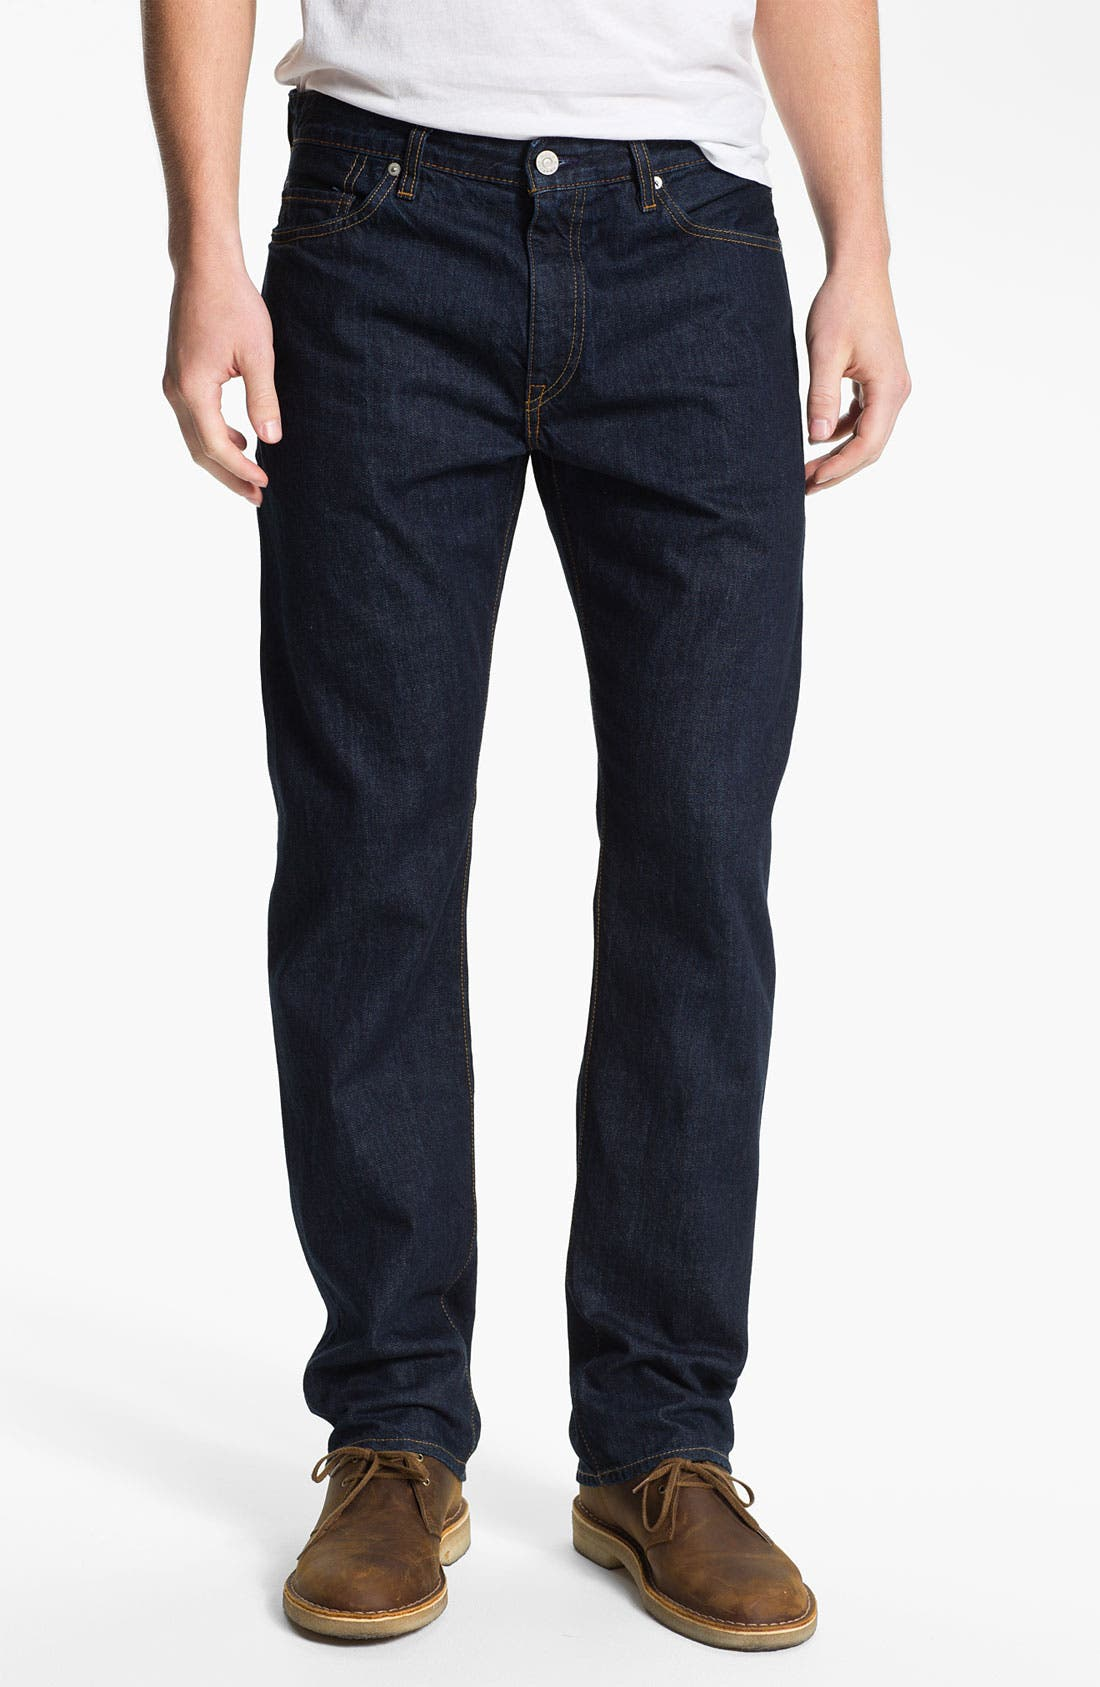 Alternate Image 1 Selected - Levi's® Made & Crafted™ 'Cutter' Relaxed Straight Leg Jeans (Easy Rinse)